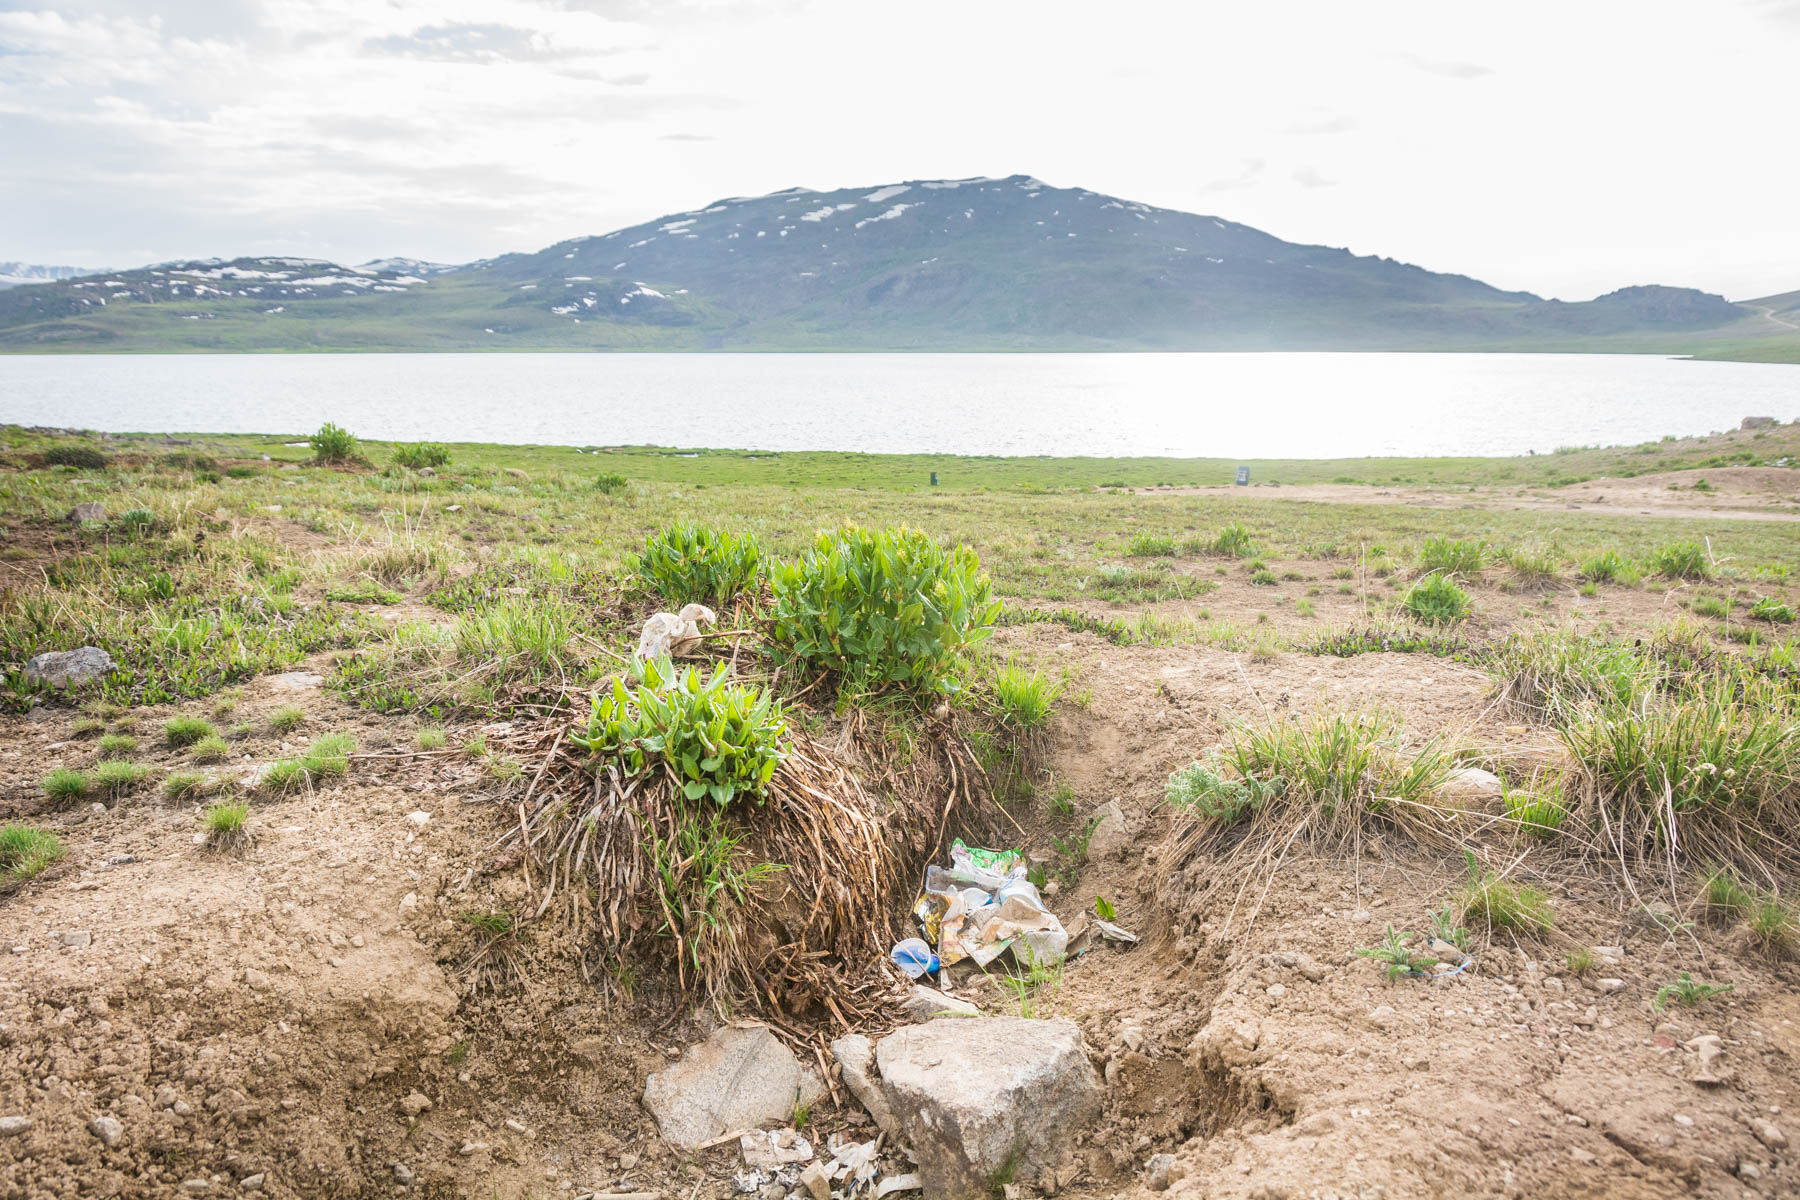 Why dual pricing is unfair - Trash in Deosai National Park, Pakistan - Lost With Purpose